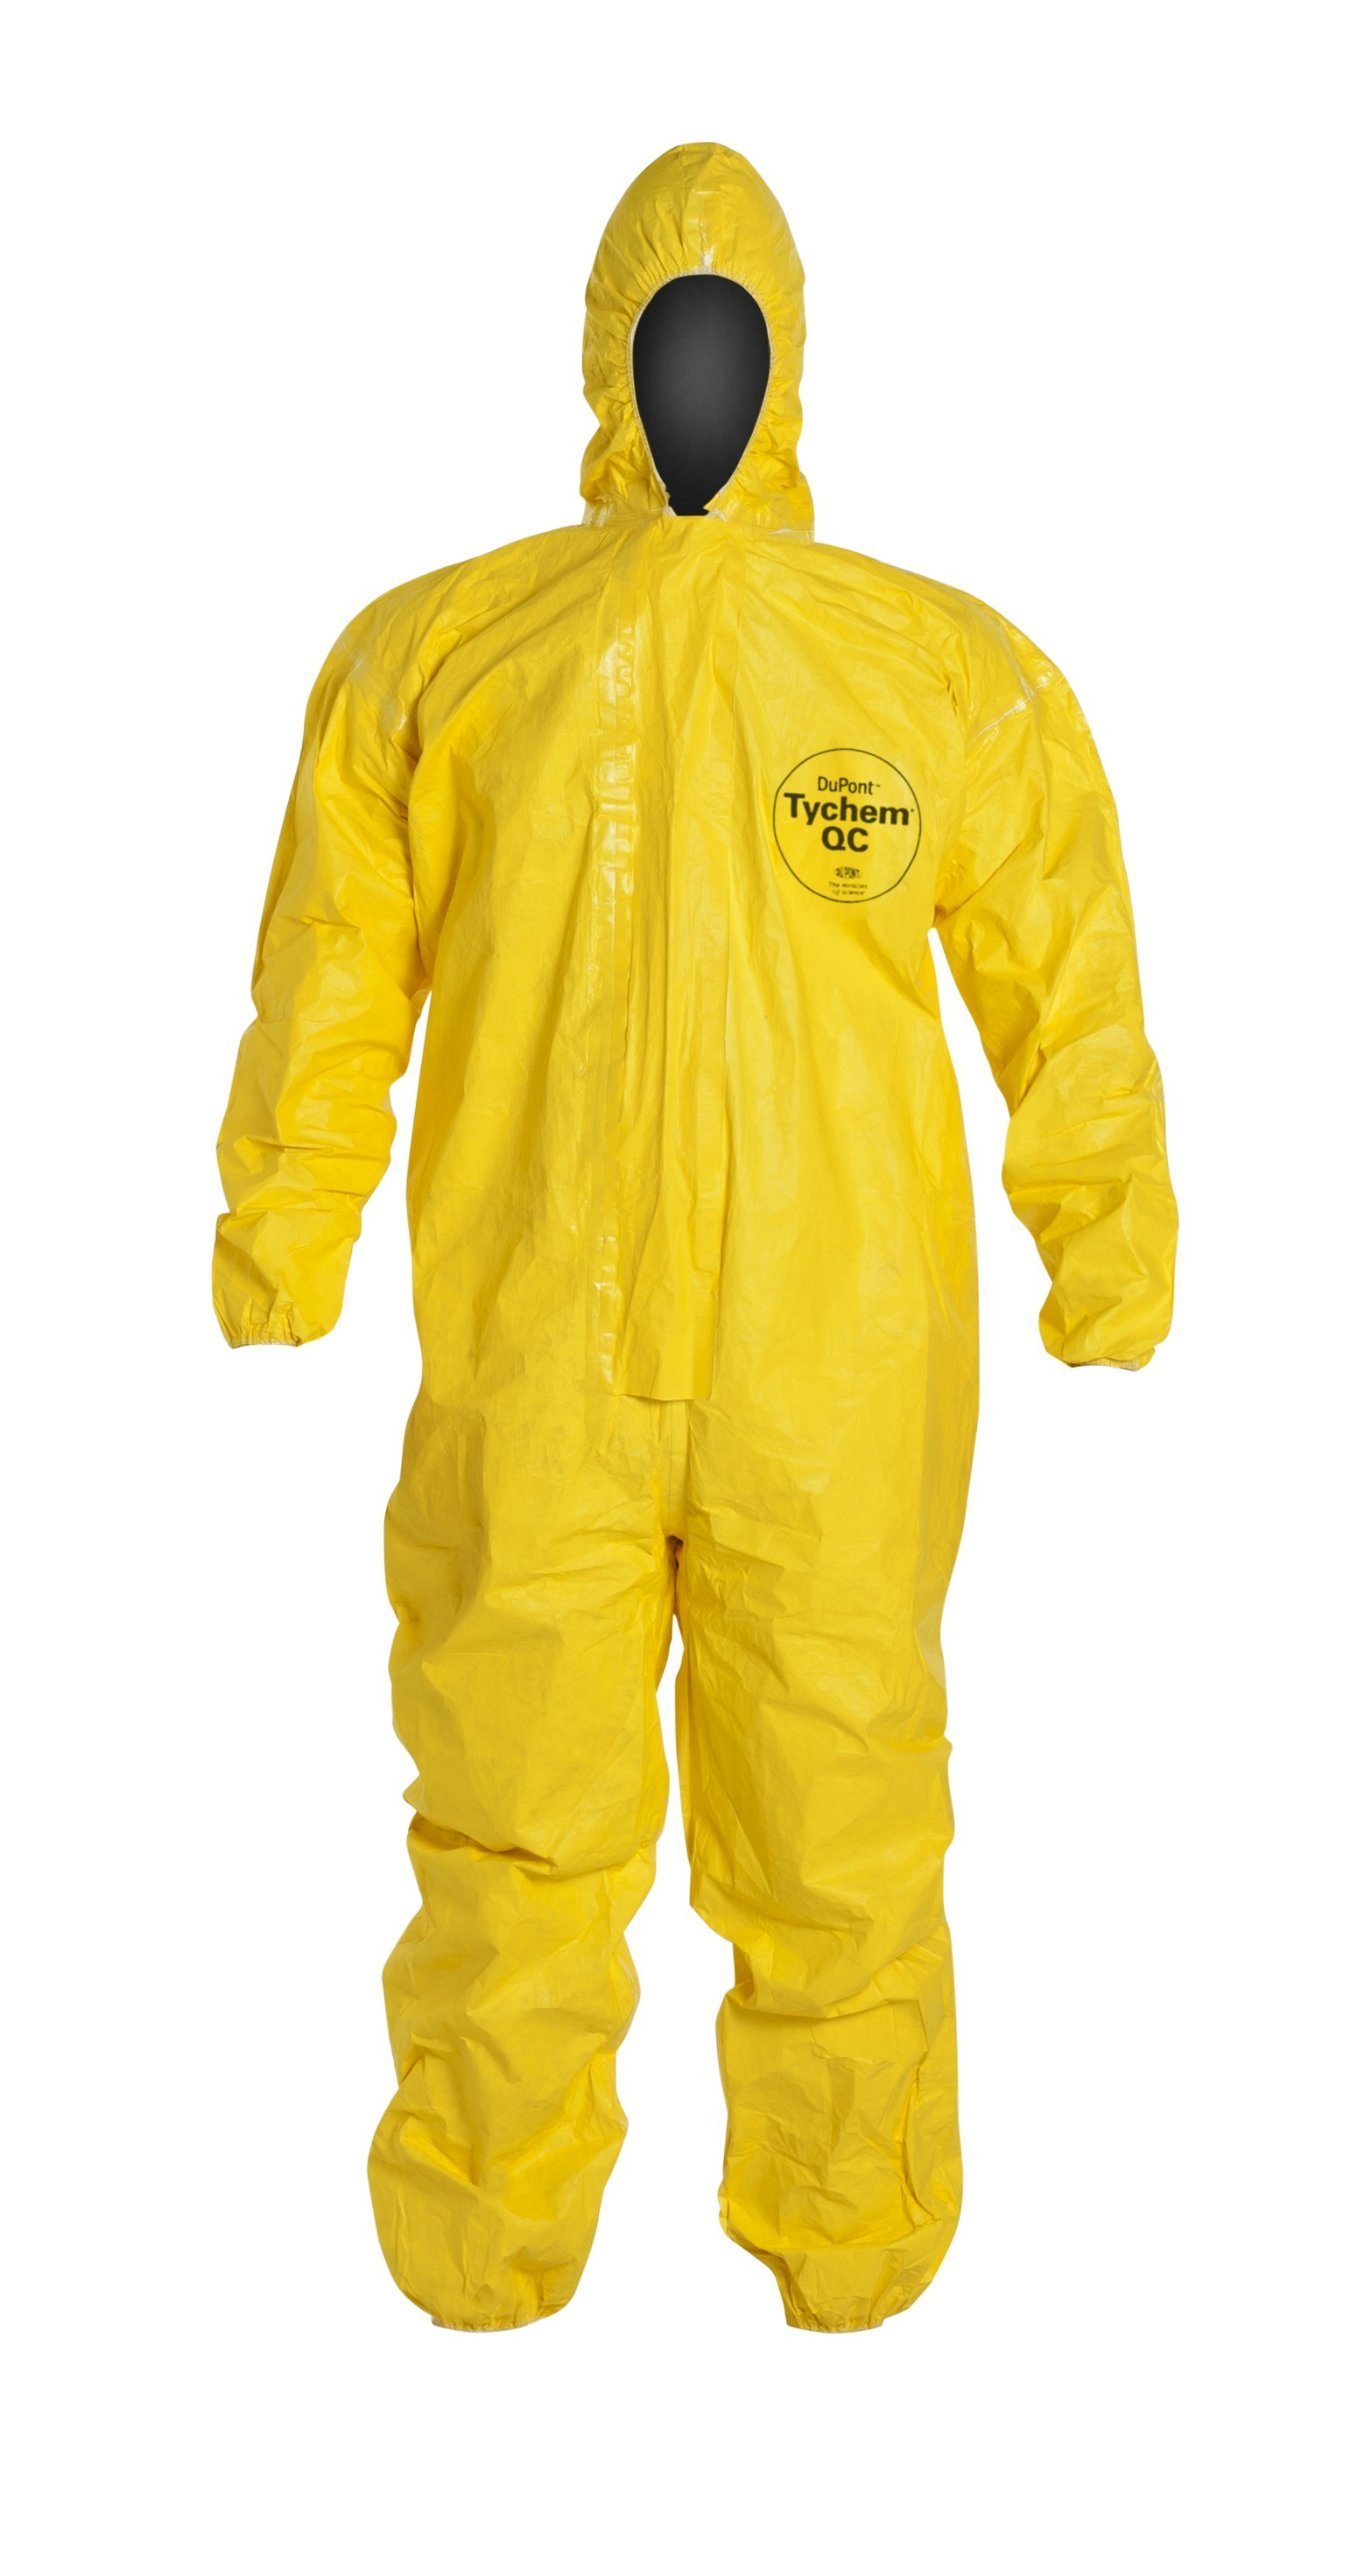 Tychem QC Chemical Protection Coveralls With Hood By Dupont, Sizes Medium To 4XL (2XL)